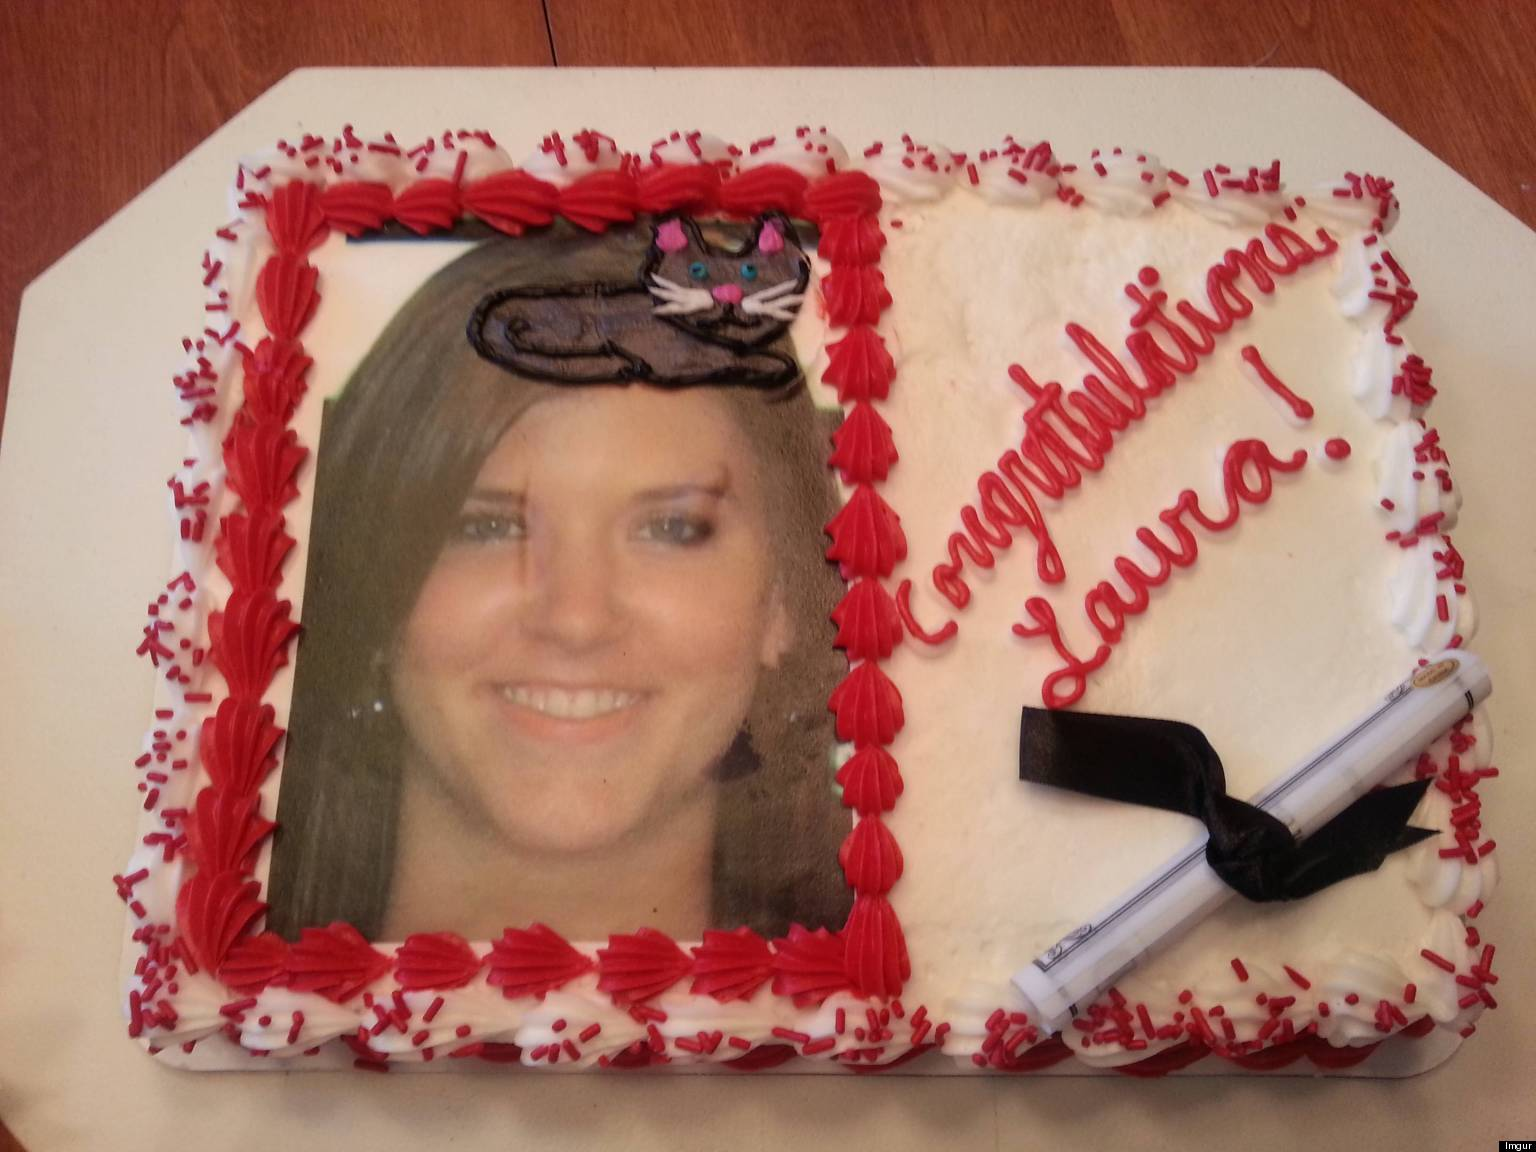 a photo of a cake with a womans smiling face on it. t